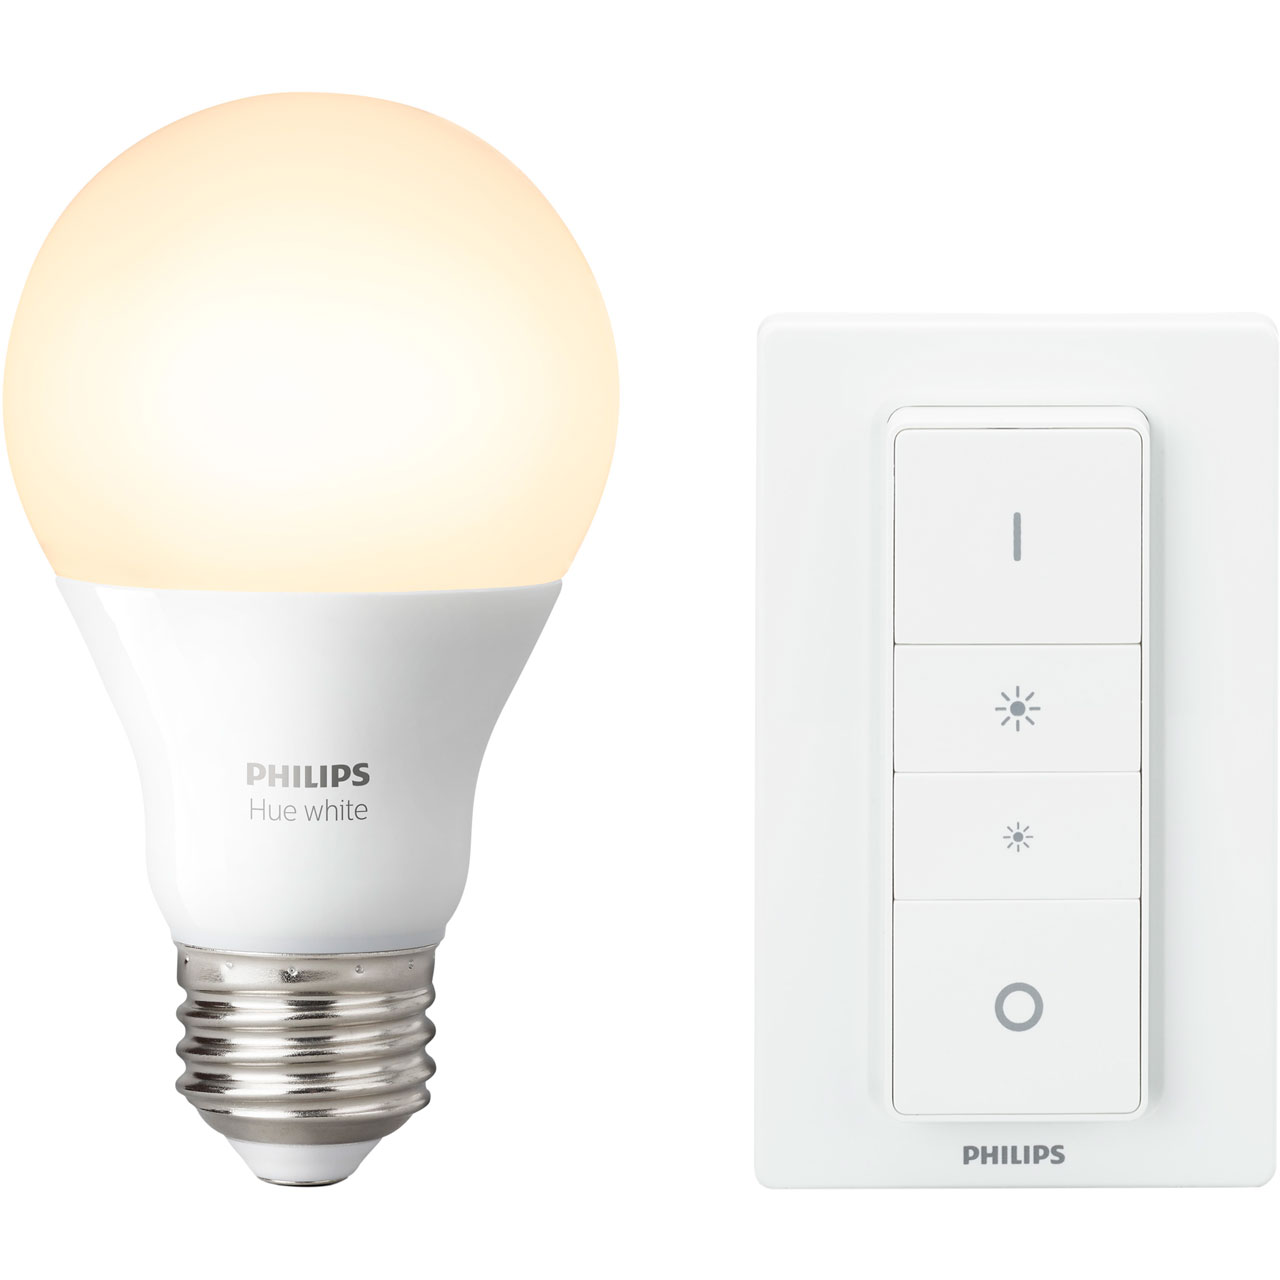 Philips Dimmer Philips Hue Wireless Dimming Kit A Rated